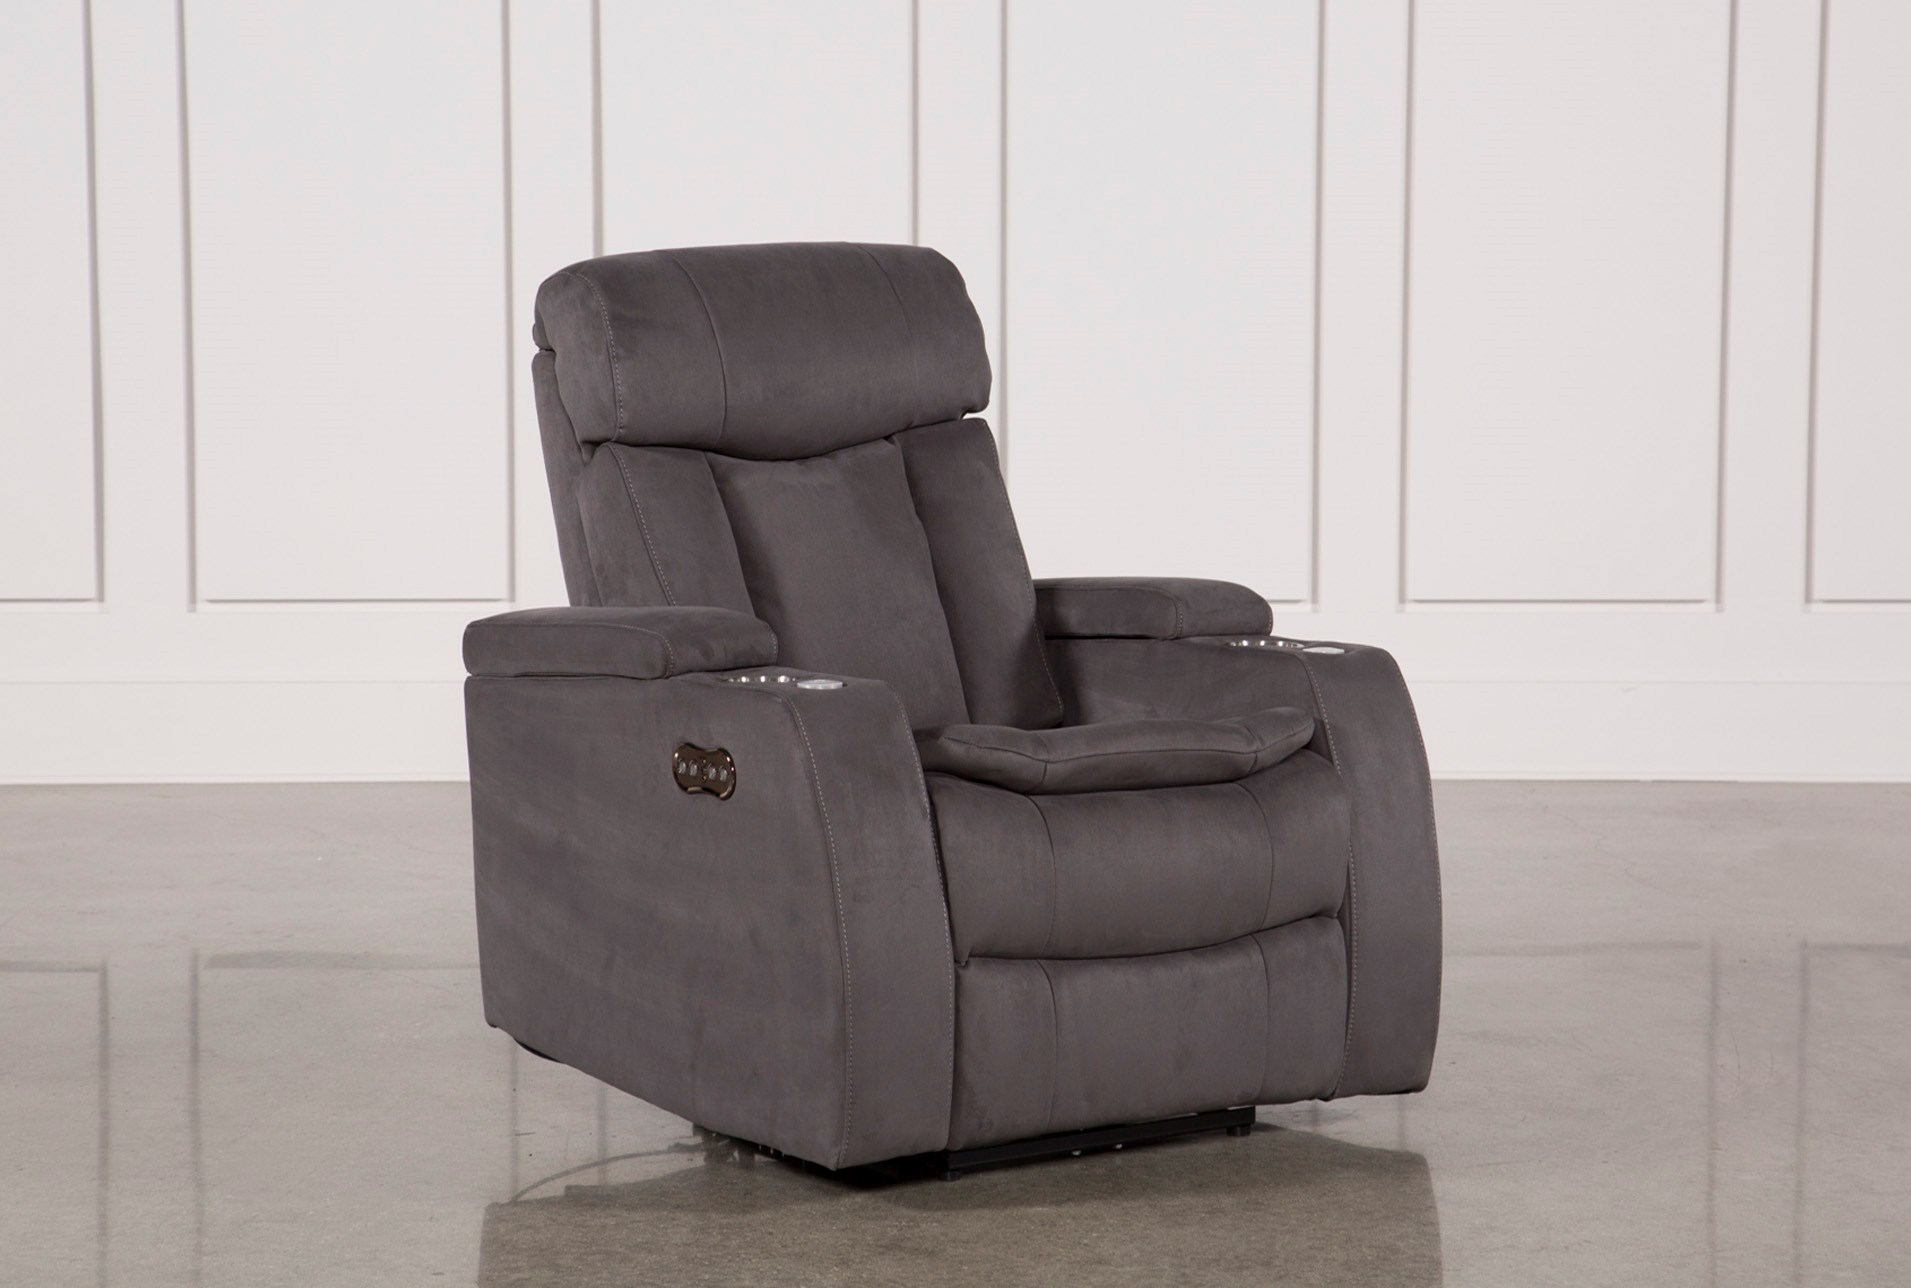 from mainstays a it features dorel products comfort theater black details mechanism leather recliner duty all this eng favorite your tv for living chairs heavy sourceimage home enjoy faux and recliners comfortable steel added of shows